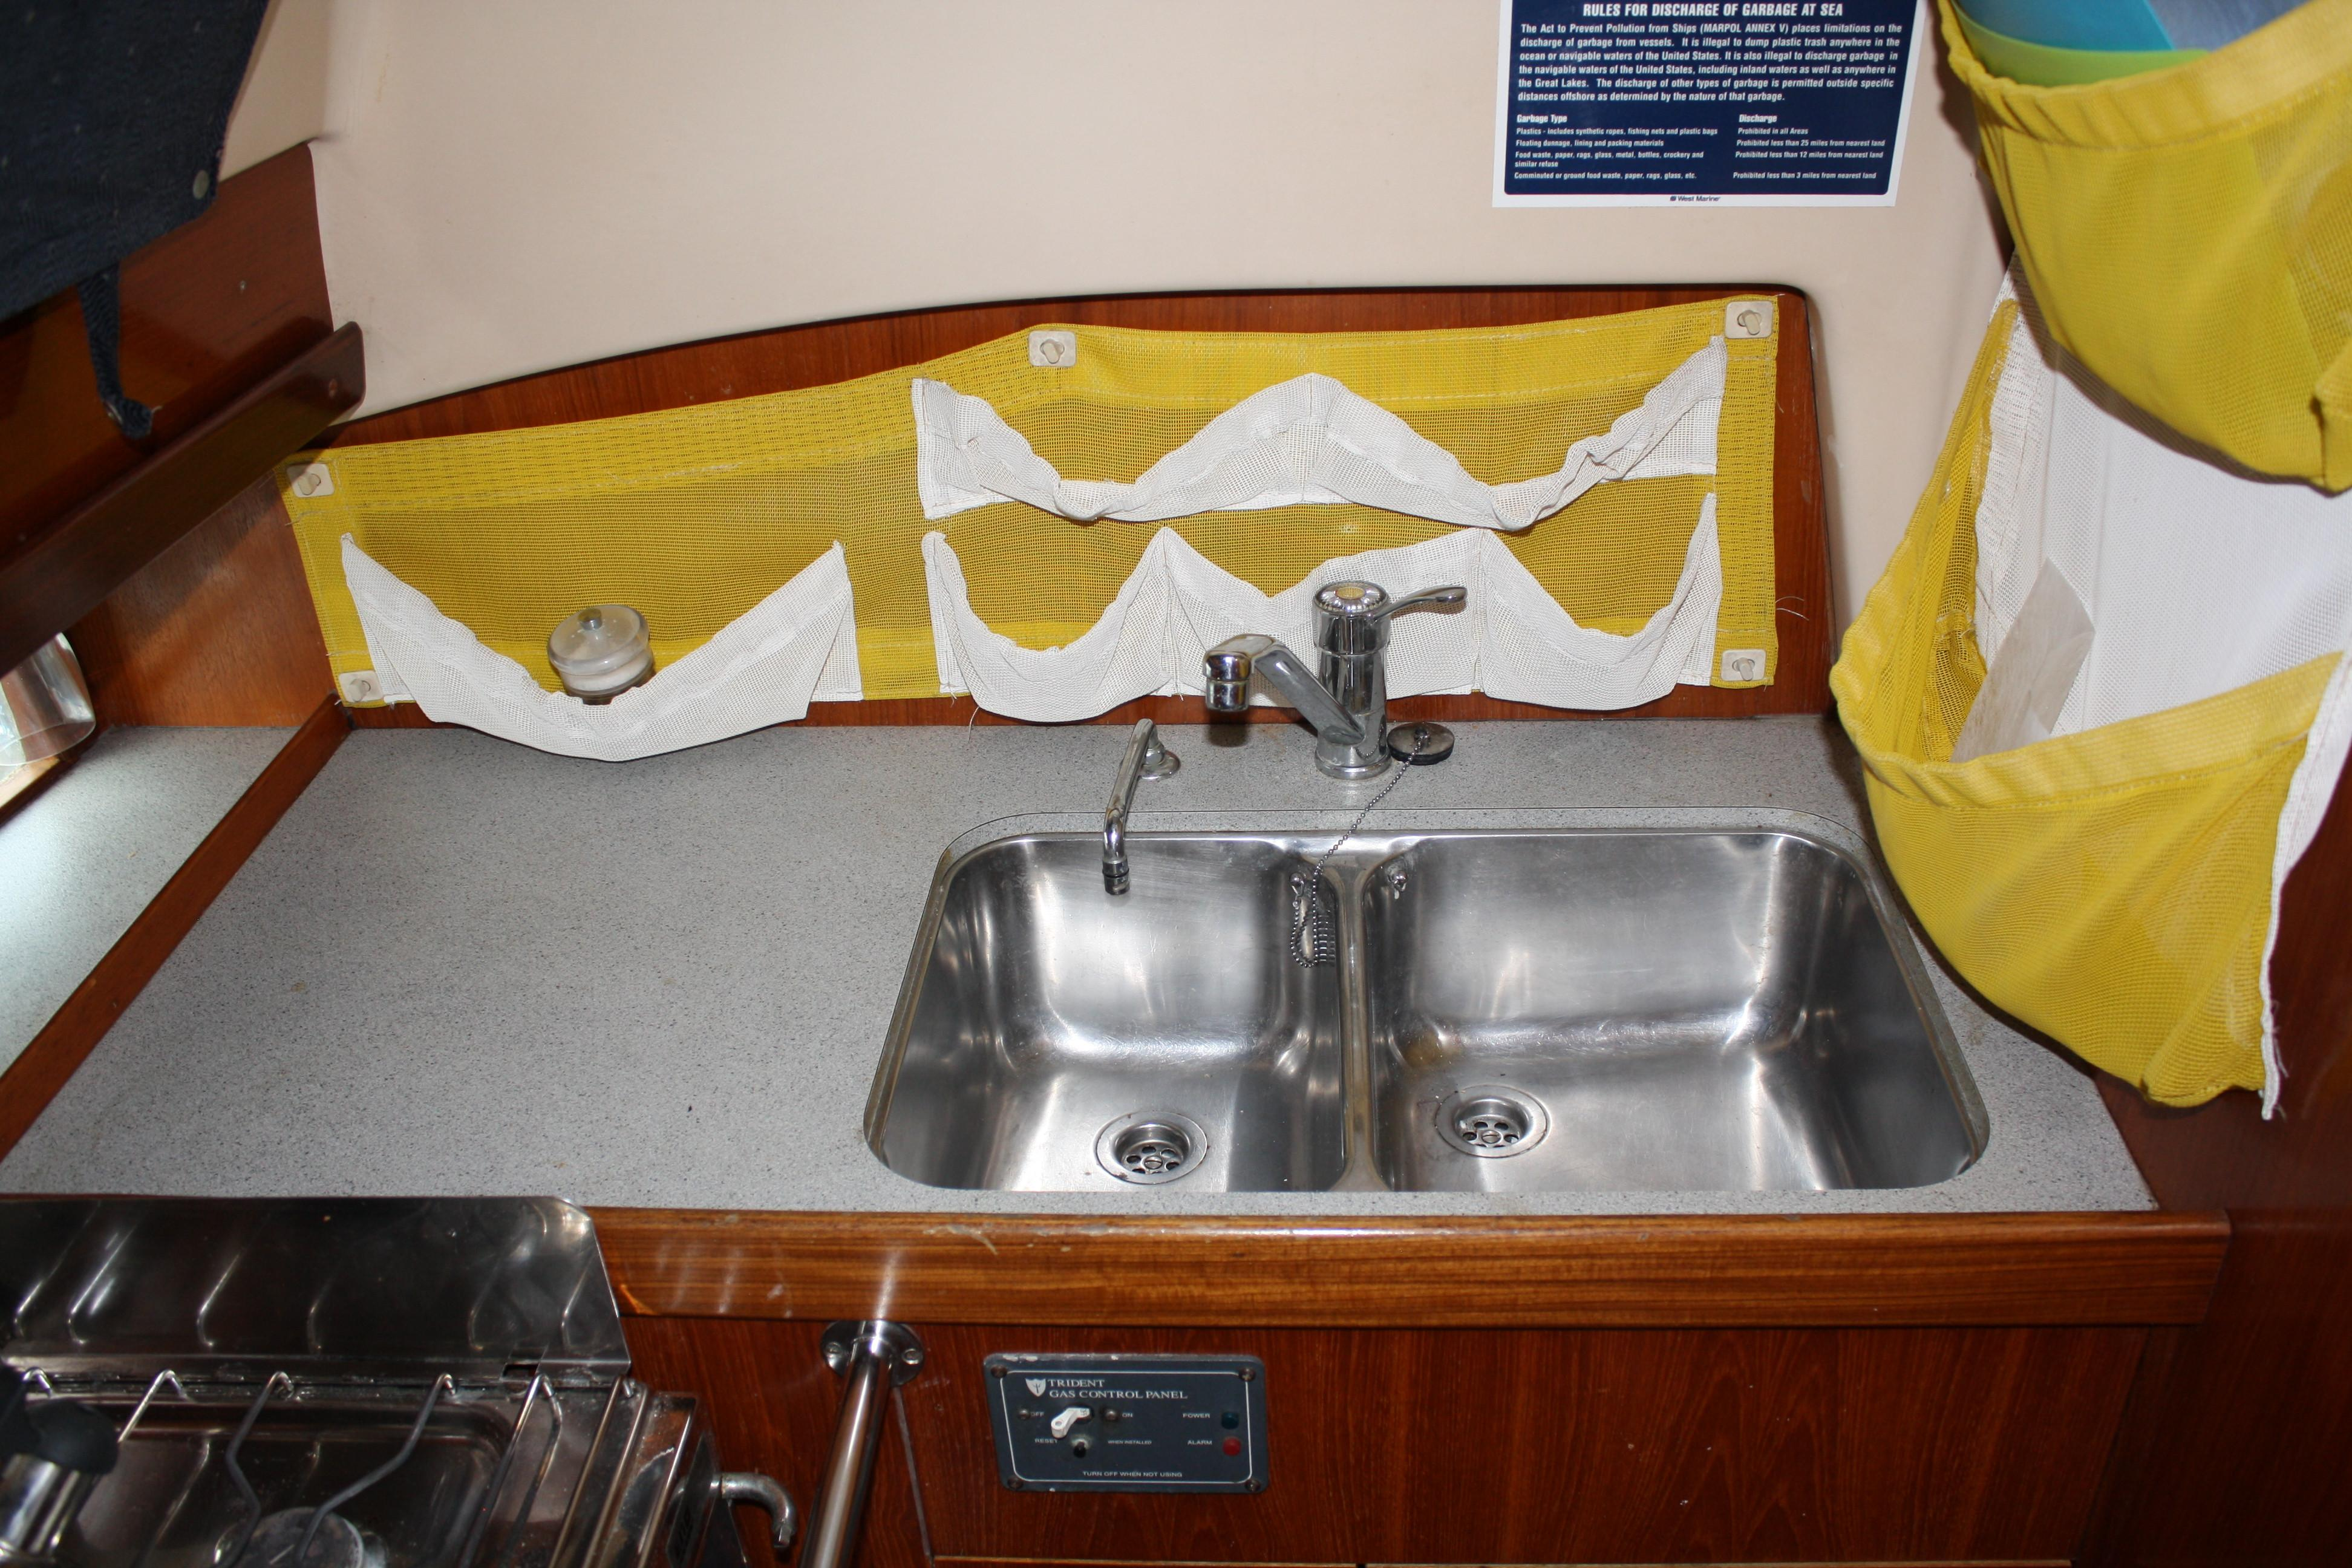 Large double bowl stainless steel sink at aft facing portion of the galley. The owners added many functional organizers in the galley area.